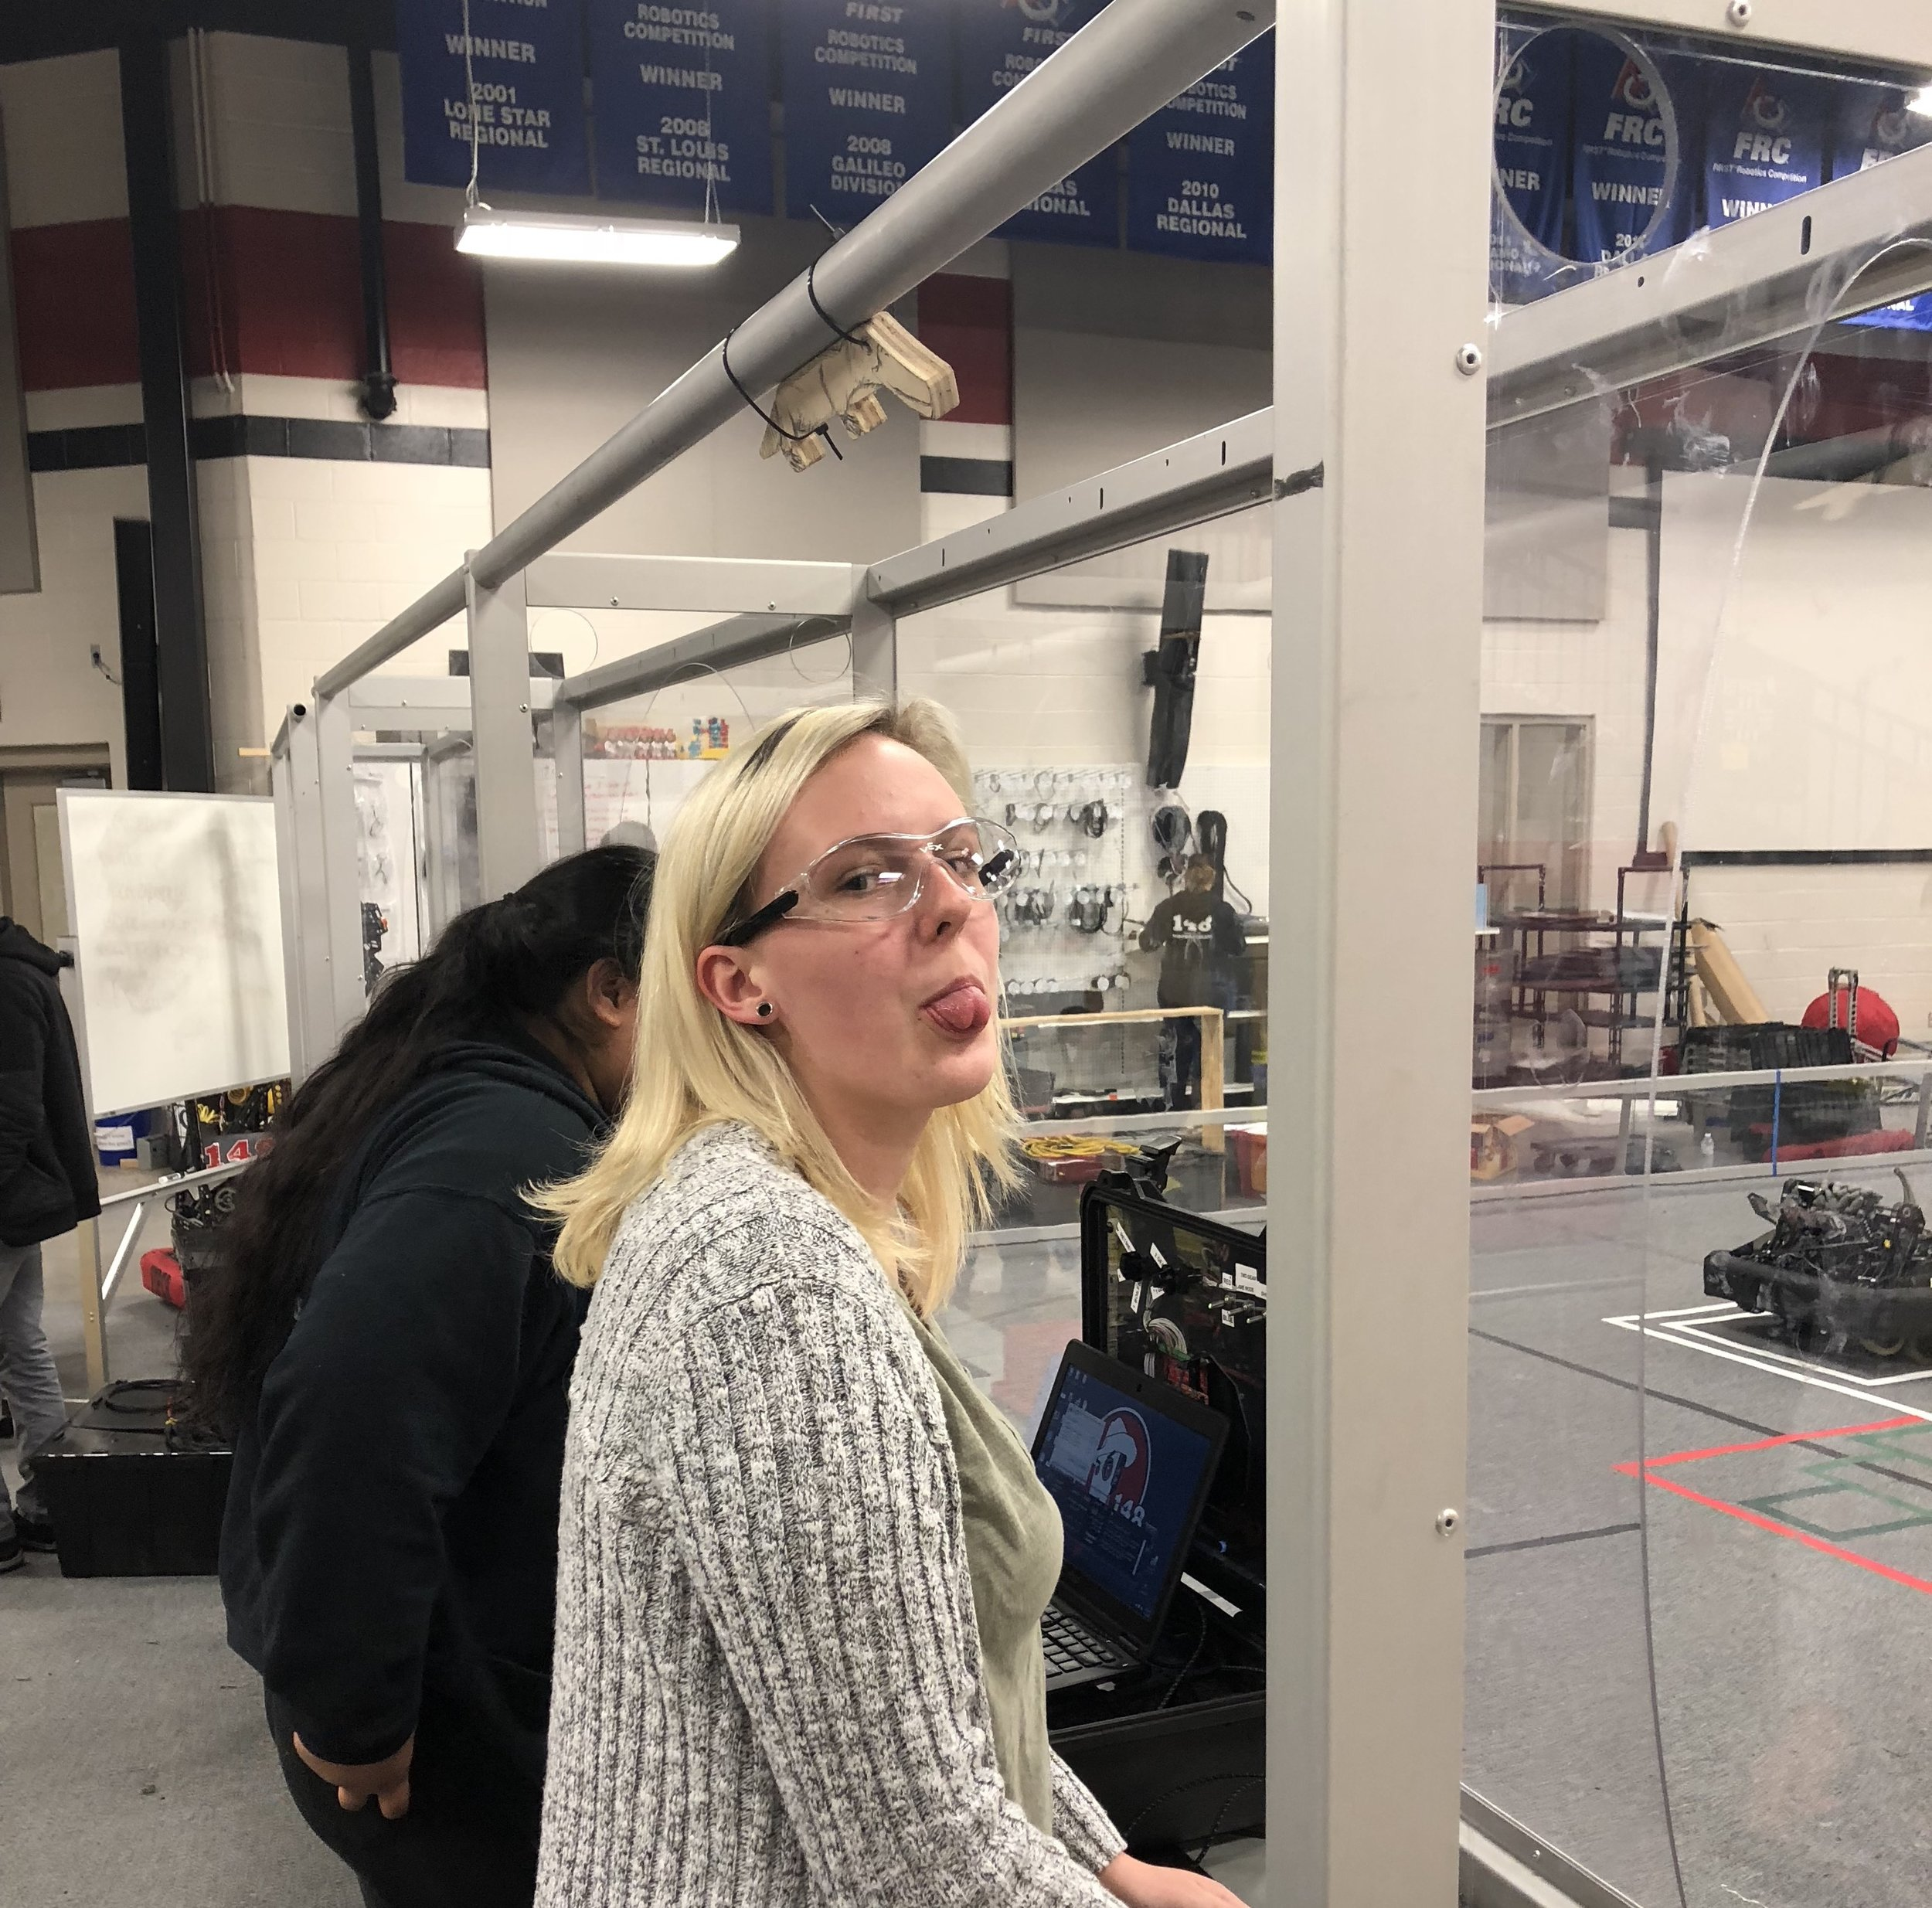 I think Katie was in a good mood to be back driving a robot which could actually pickup game pieces.